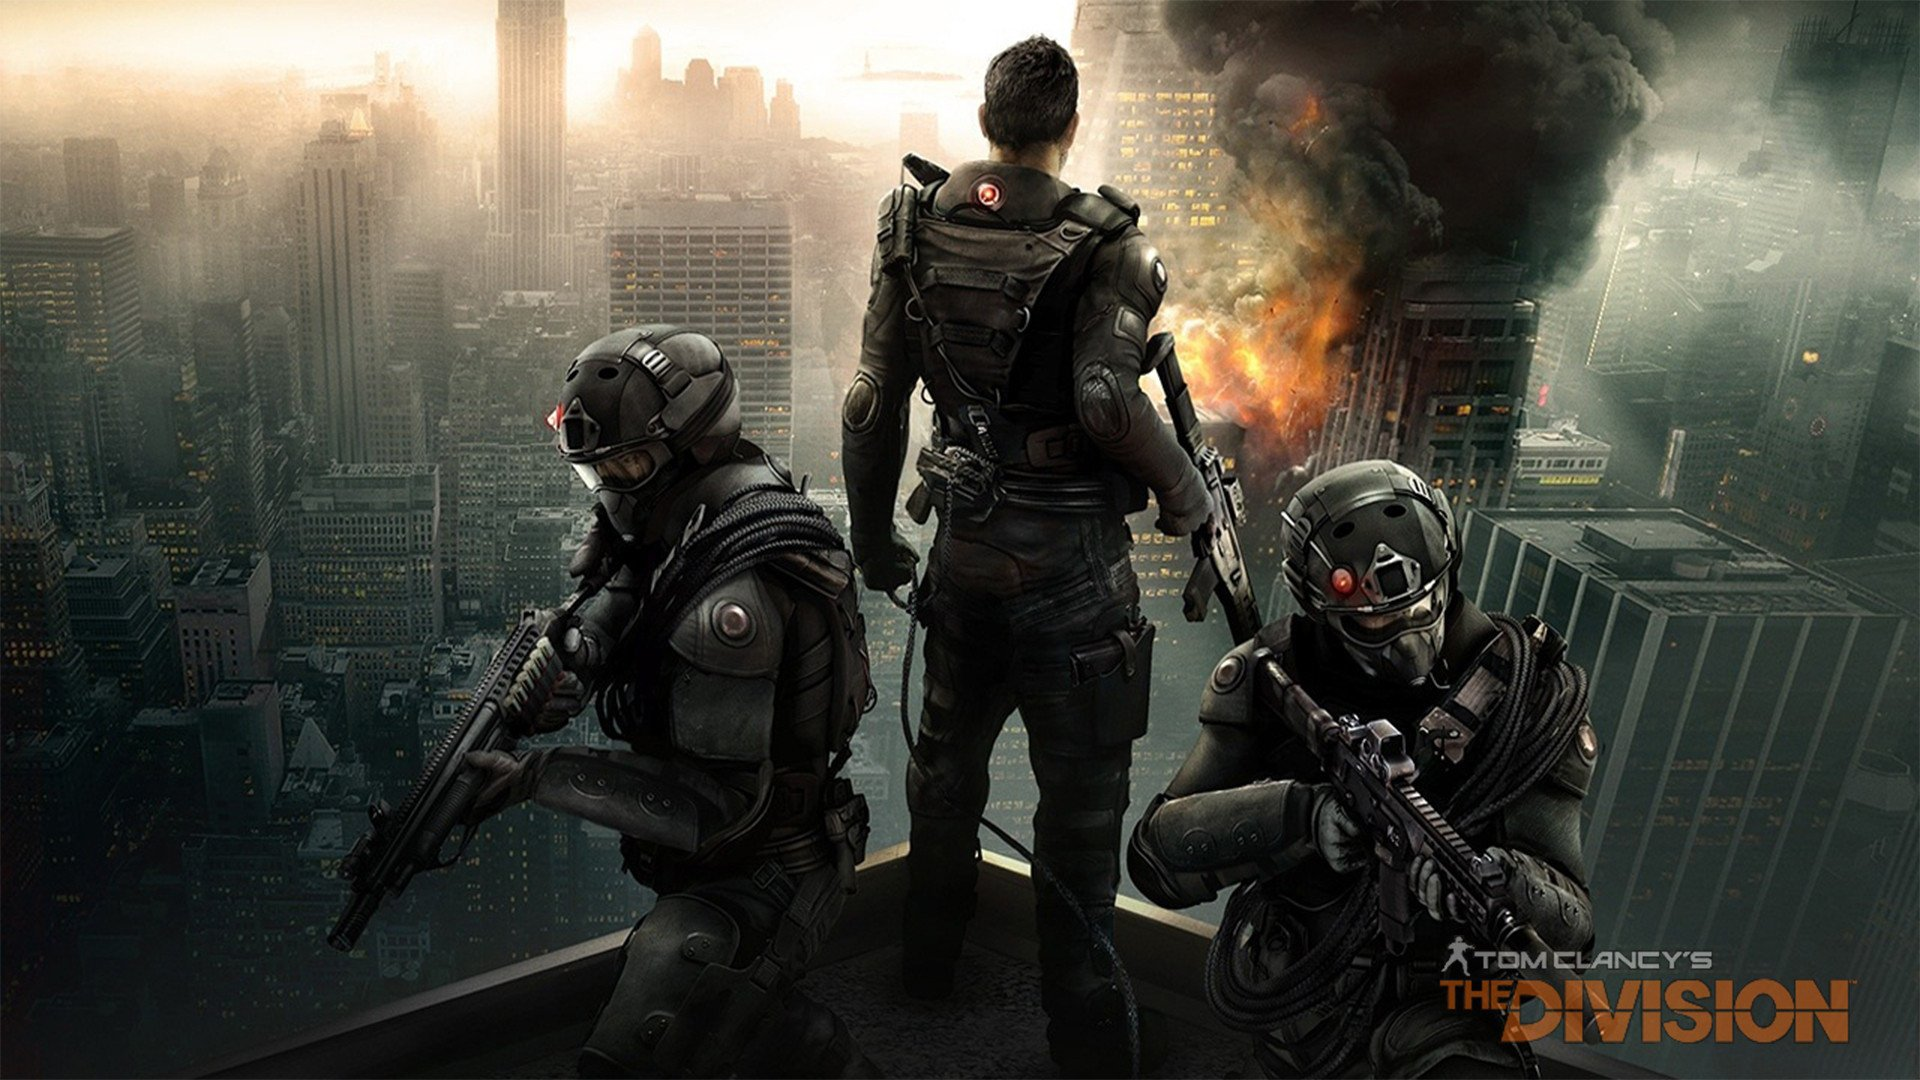 Tom Clancys The Division wallpaper   1274246 1920x1080